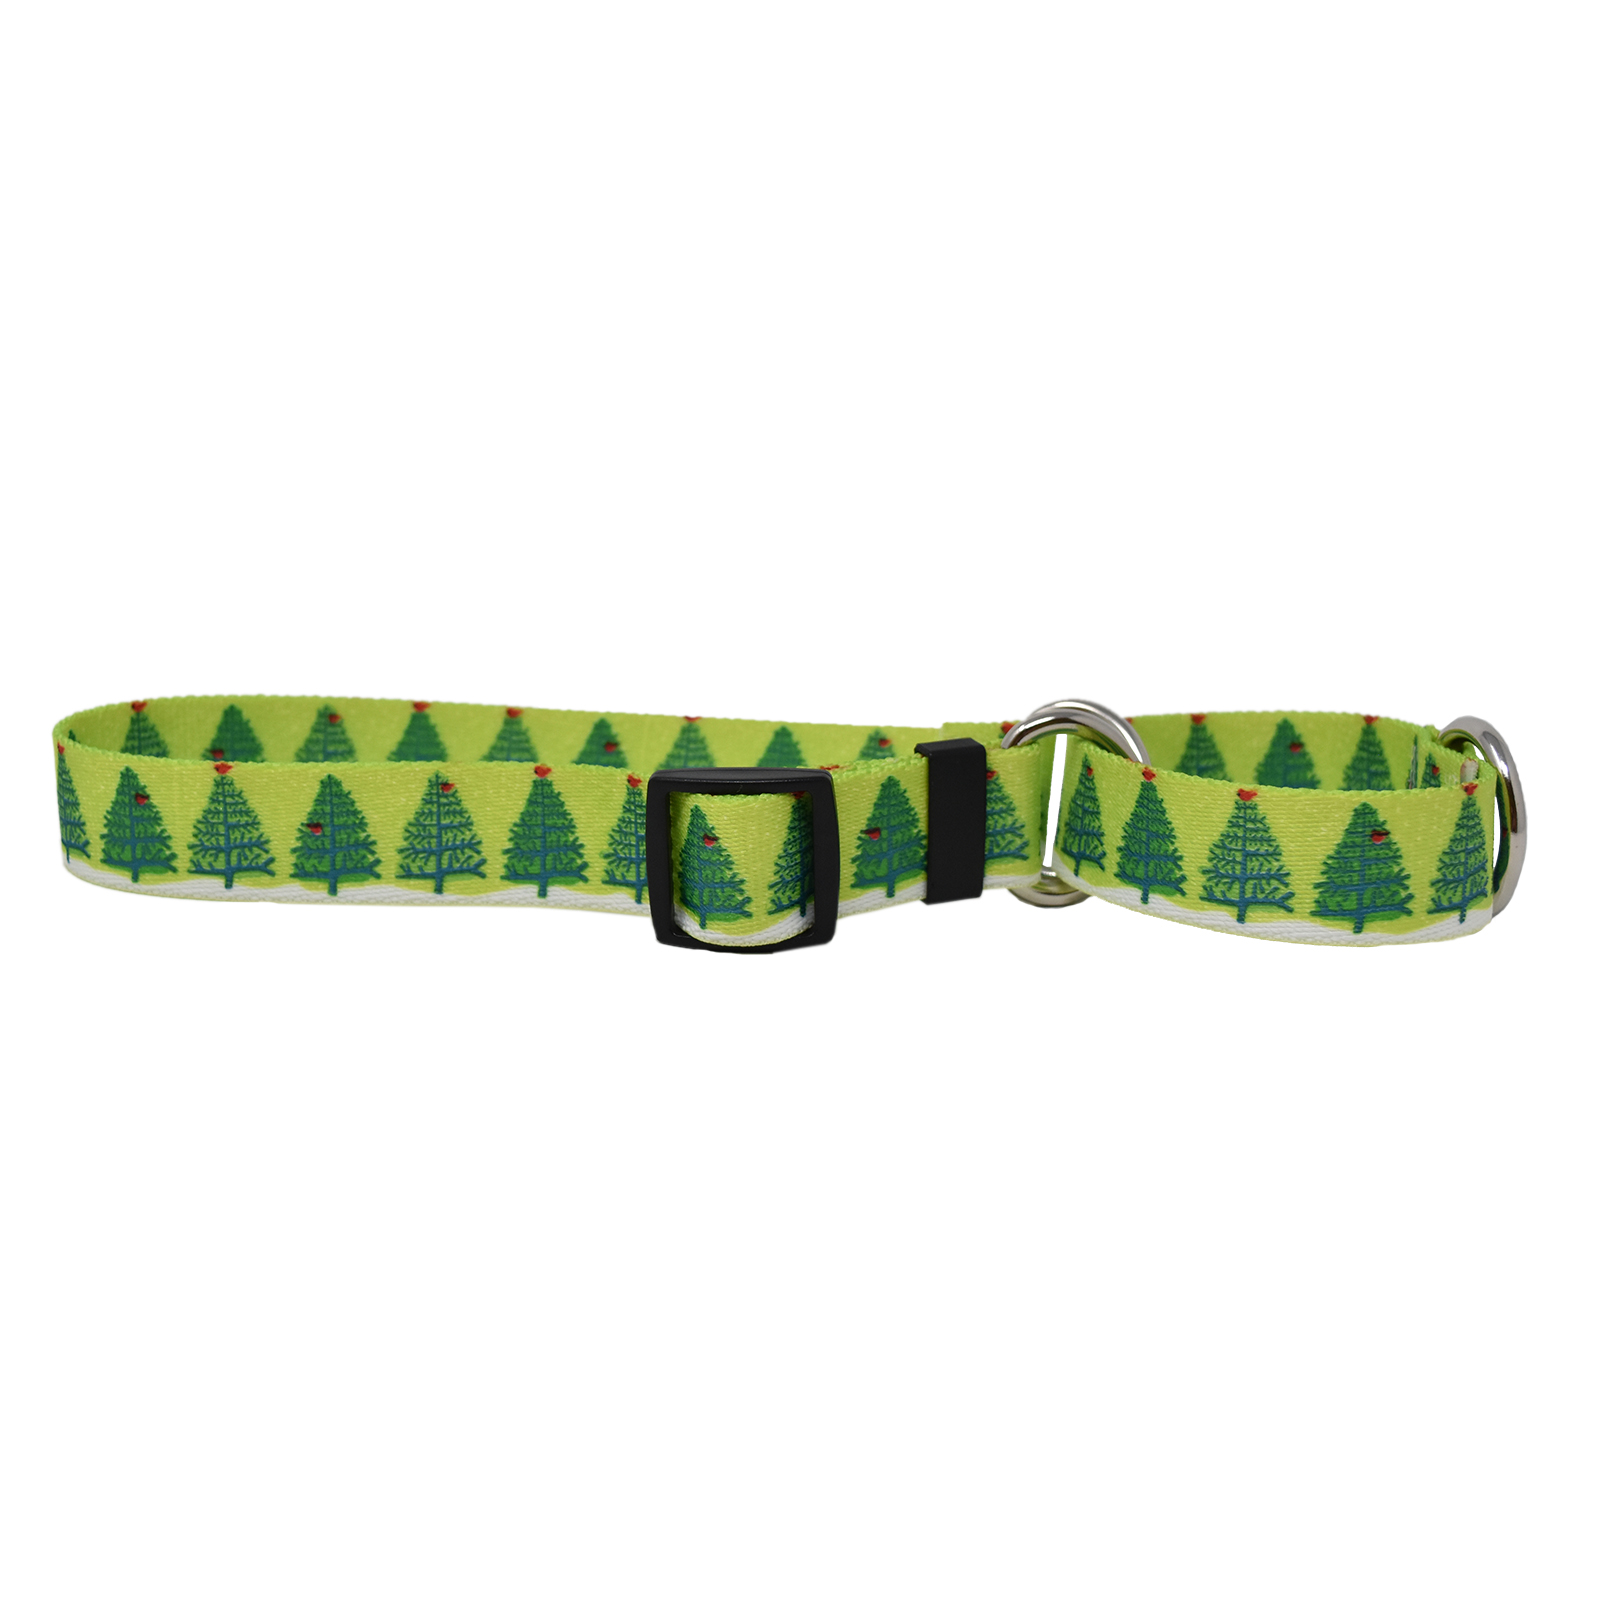 O Tanmenbaum Green Martingale Collar